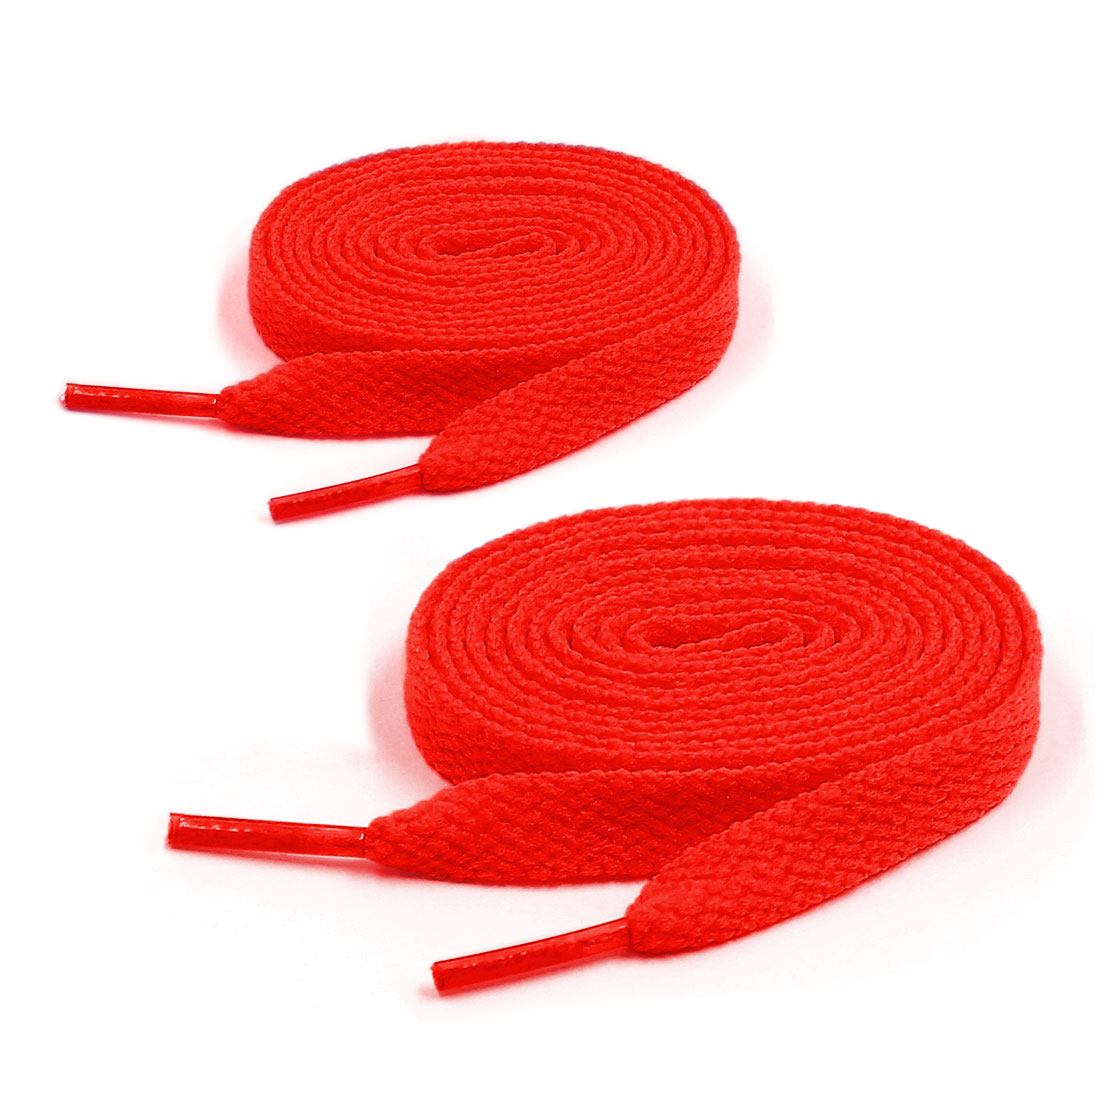 Buy 1 Get 1 Free | Unisex 123cm Length Sneaker Flat Bootlaces Shoelaces Strings Laces Red